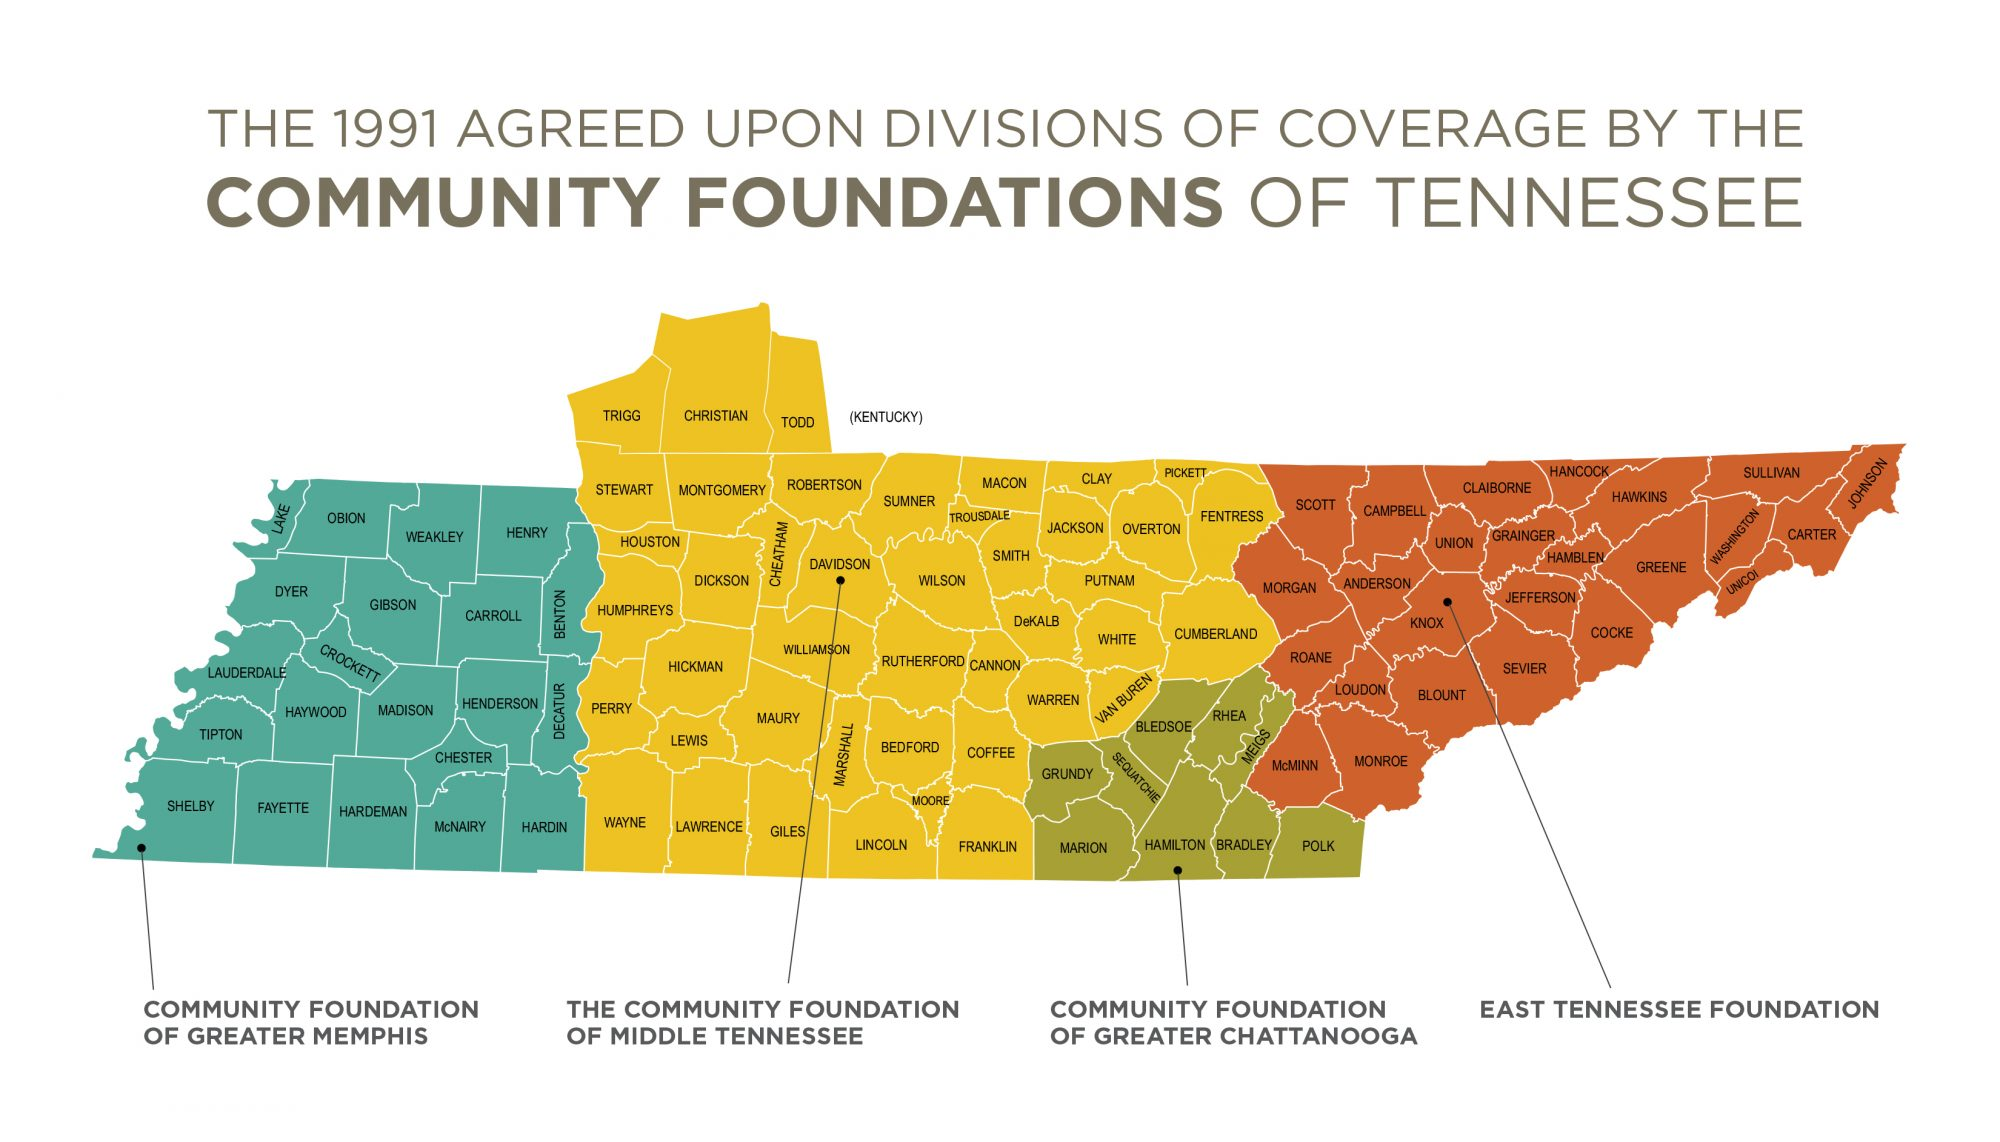 The Community Foundations of Tennessee Map